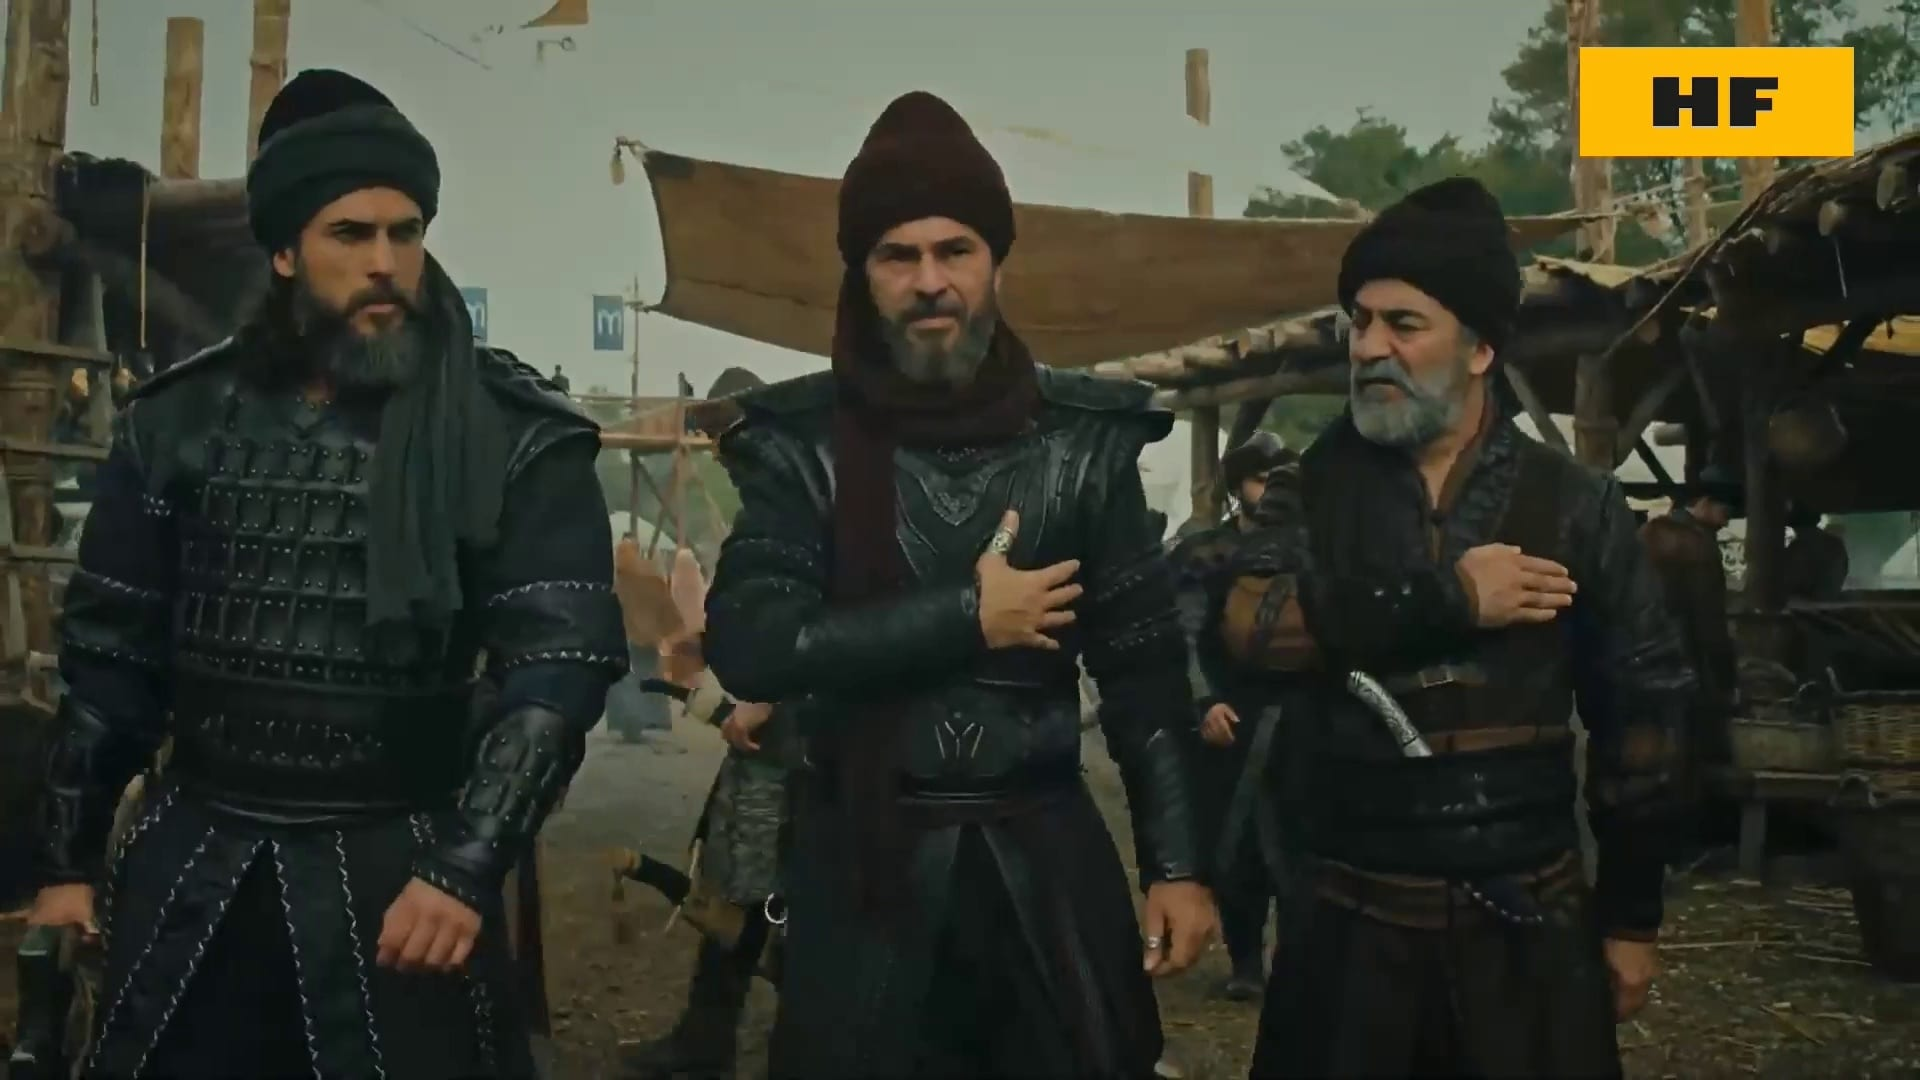 Watch Dirilis Ertugrul Season 5 Episode 1 - Historical Fun TV